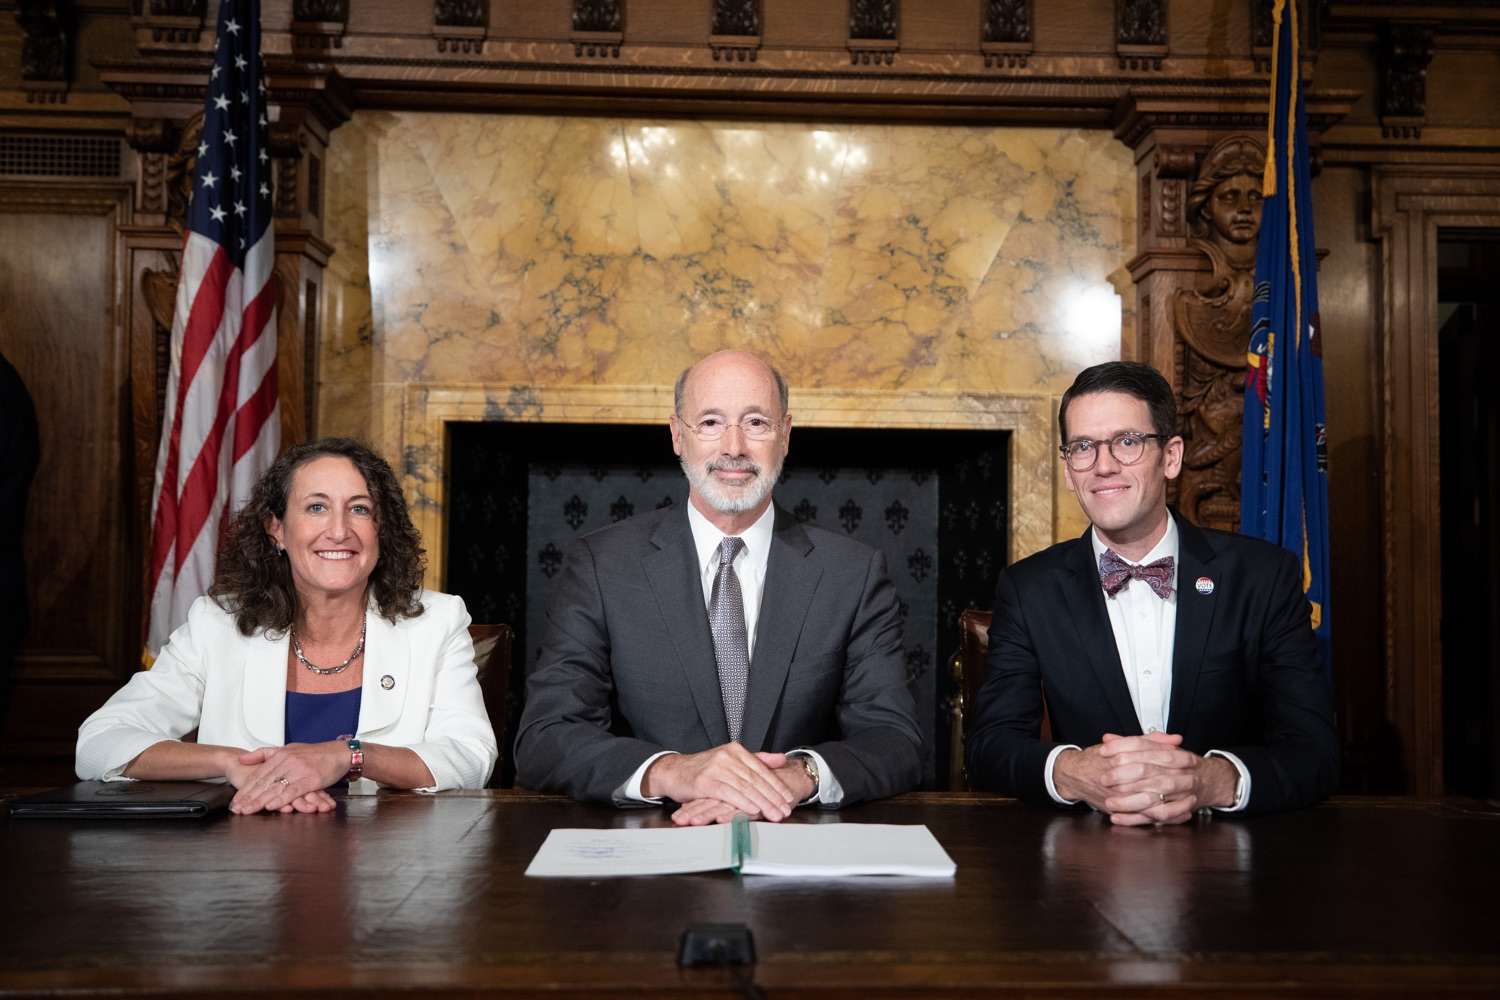 "<a href=""http://filesource.abacast.com/commonwealthofpa/photo/17554_gov_voter_reform_bill_dz_025.jpg"" target=""_blank"">⇣ Download Photo<br></a>Harrisburg, PA  Governor Tom Wolf posing with attendees after the bill signing. Governor Wolf made voting more convenient and secure by signing Act 77 of 2019, the most significant improvement to Pennsylvanias elections in more than 80 years. The bipartisan compromise legislation takes effect for the April 2020 primary election and makes Pennsylvania a national leader with voter-friendly election reforms."